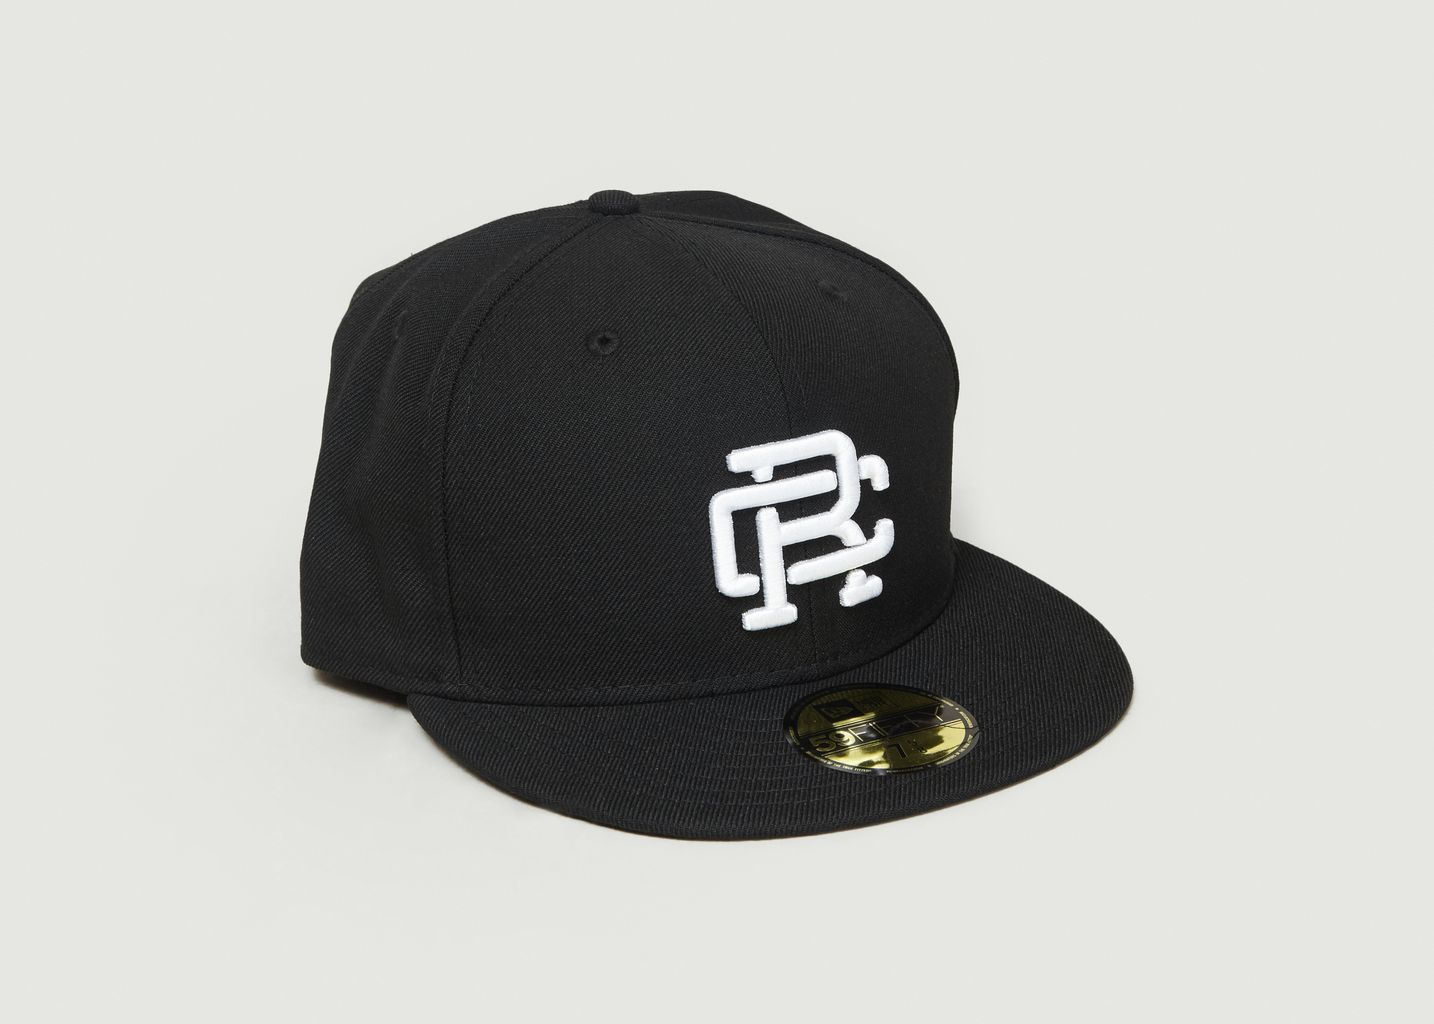 2a0b989c Reigning Champ x New Era Cap Black Reigning Champ | L'Exception